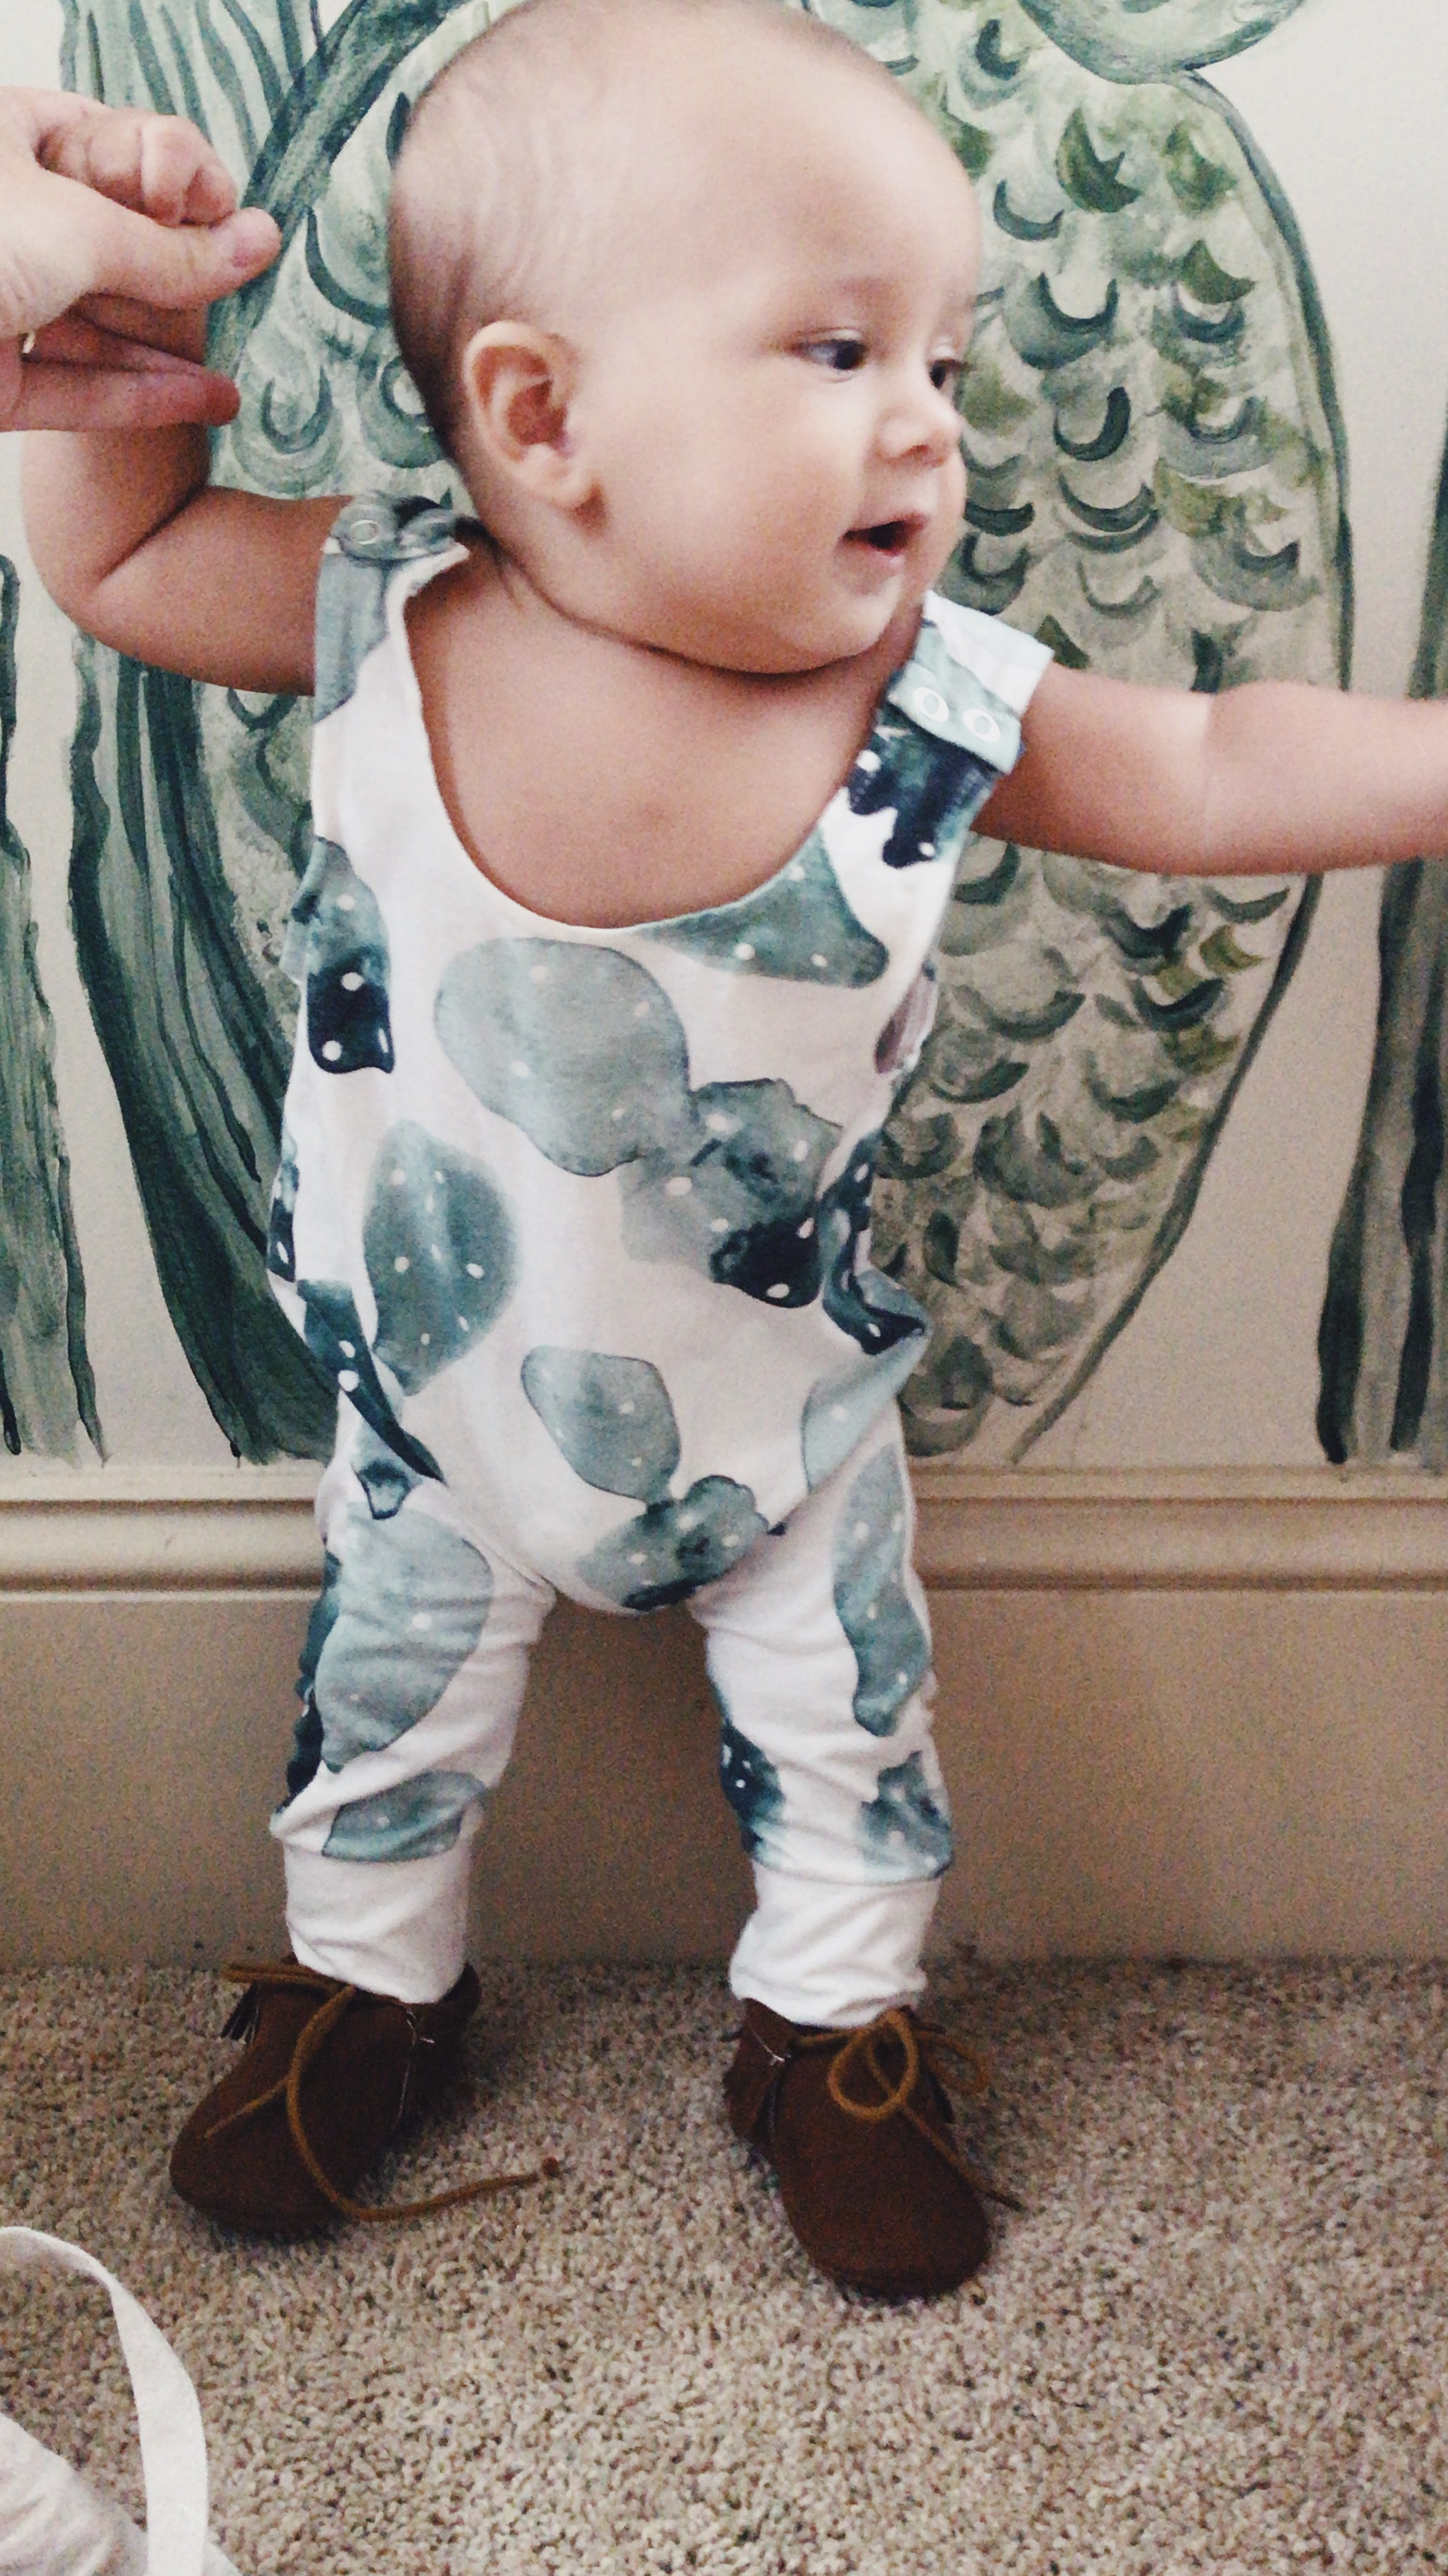 where Judah's outfit is from https://www.amazon.com/Ocaler-Infant-Cactus-Jumpsuit-Outfits/dp/B074K95XQR/ref=mp_s_a_1_6?ie=UTF8&qid=1536087038&sr=8-6&pi=AC_SX236_SY340_QL65&keywords=baby+cactus+outfit